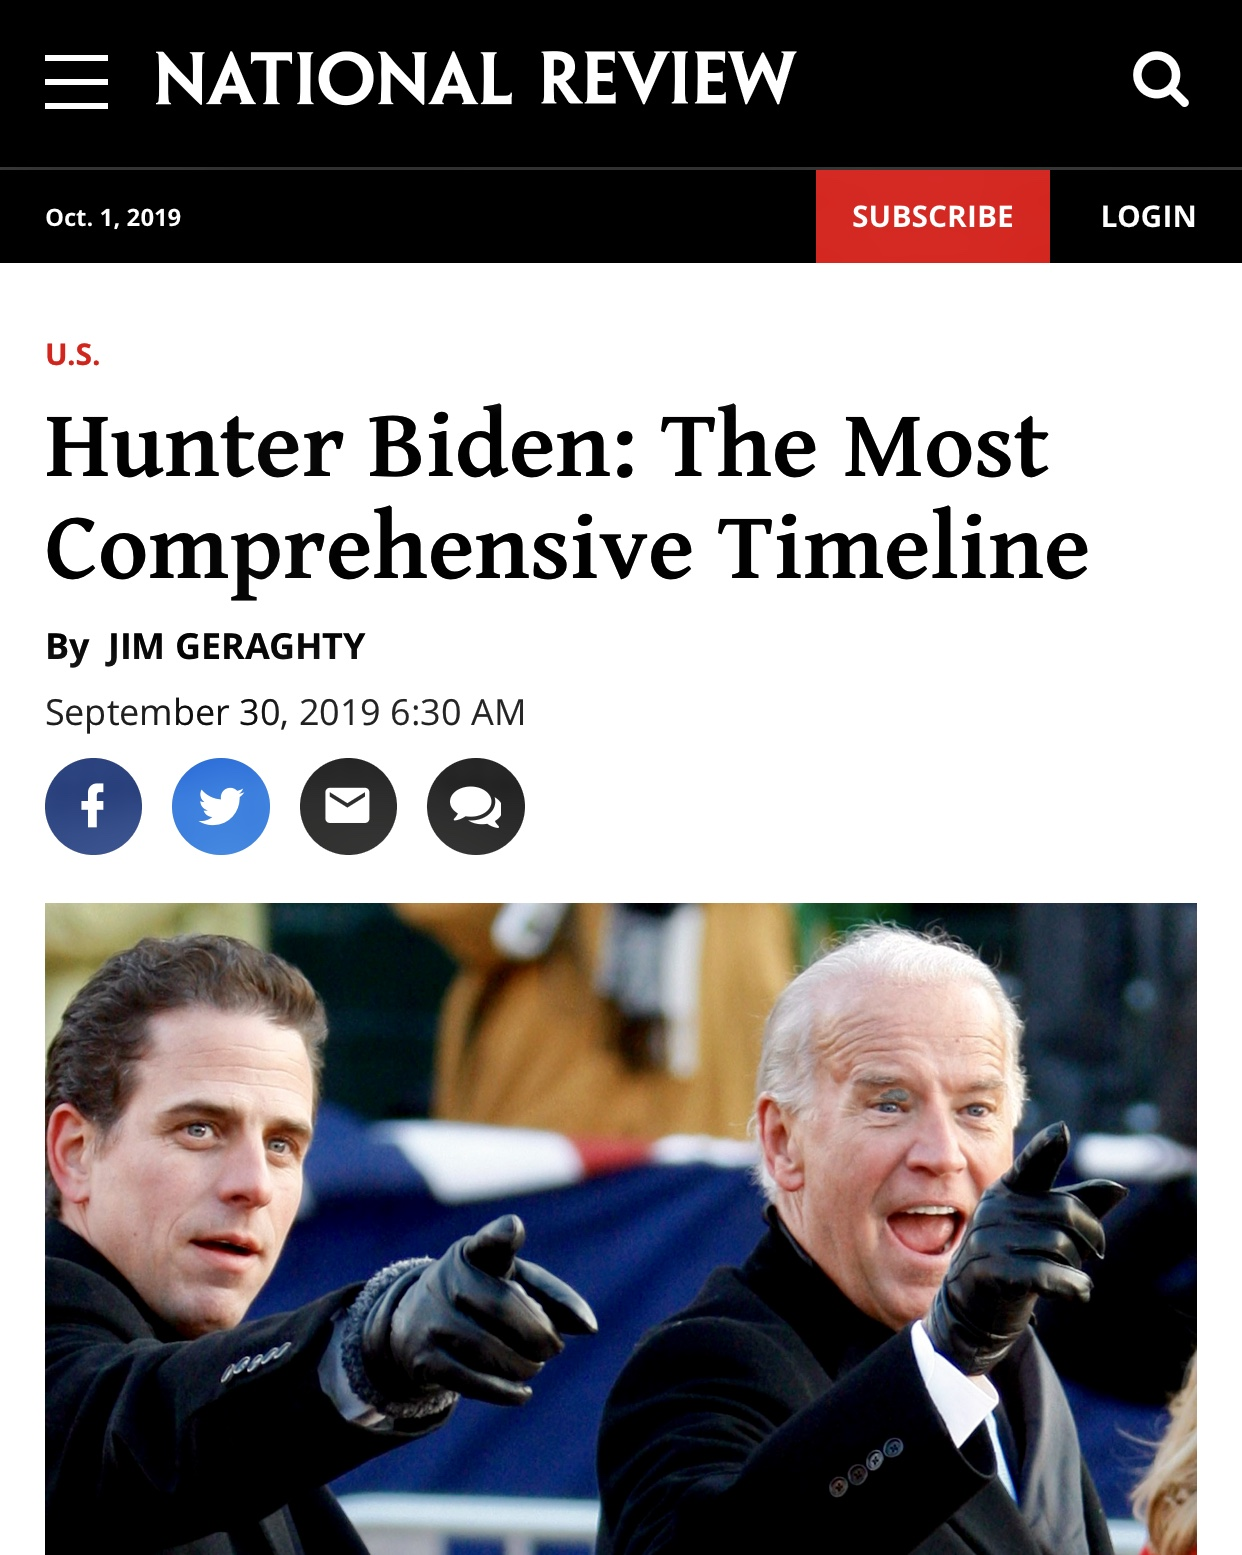 Hunter Biden: The Most Comprehensive Timeline